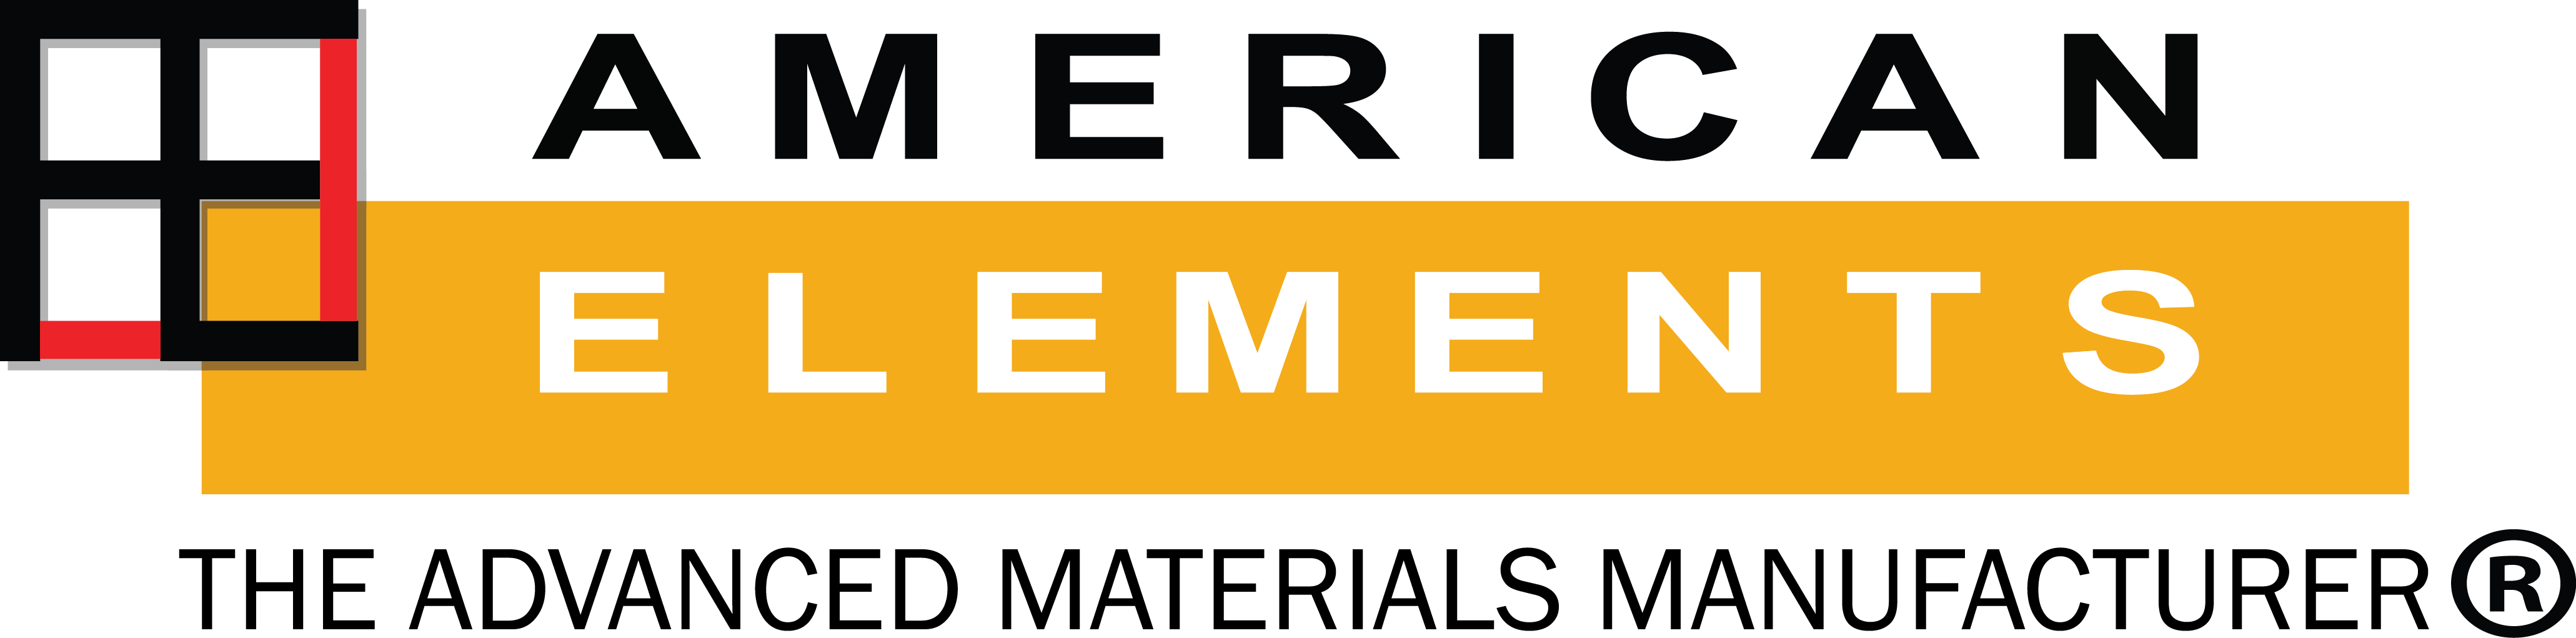 American Elements, global manufacturer of high purity metals, laser crystals, advanced materials for optics, optoelectronics and nanospectroscopy applications